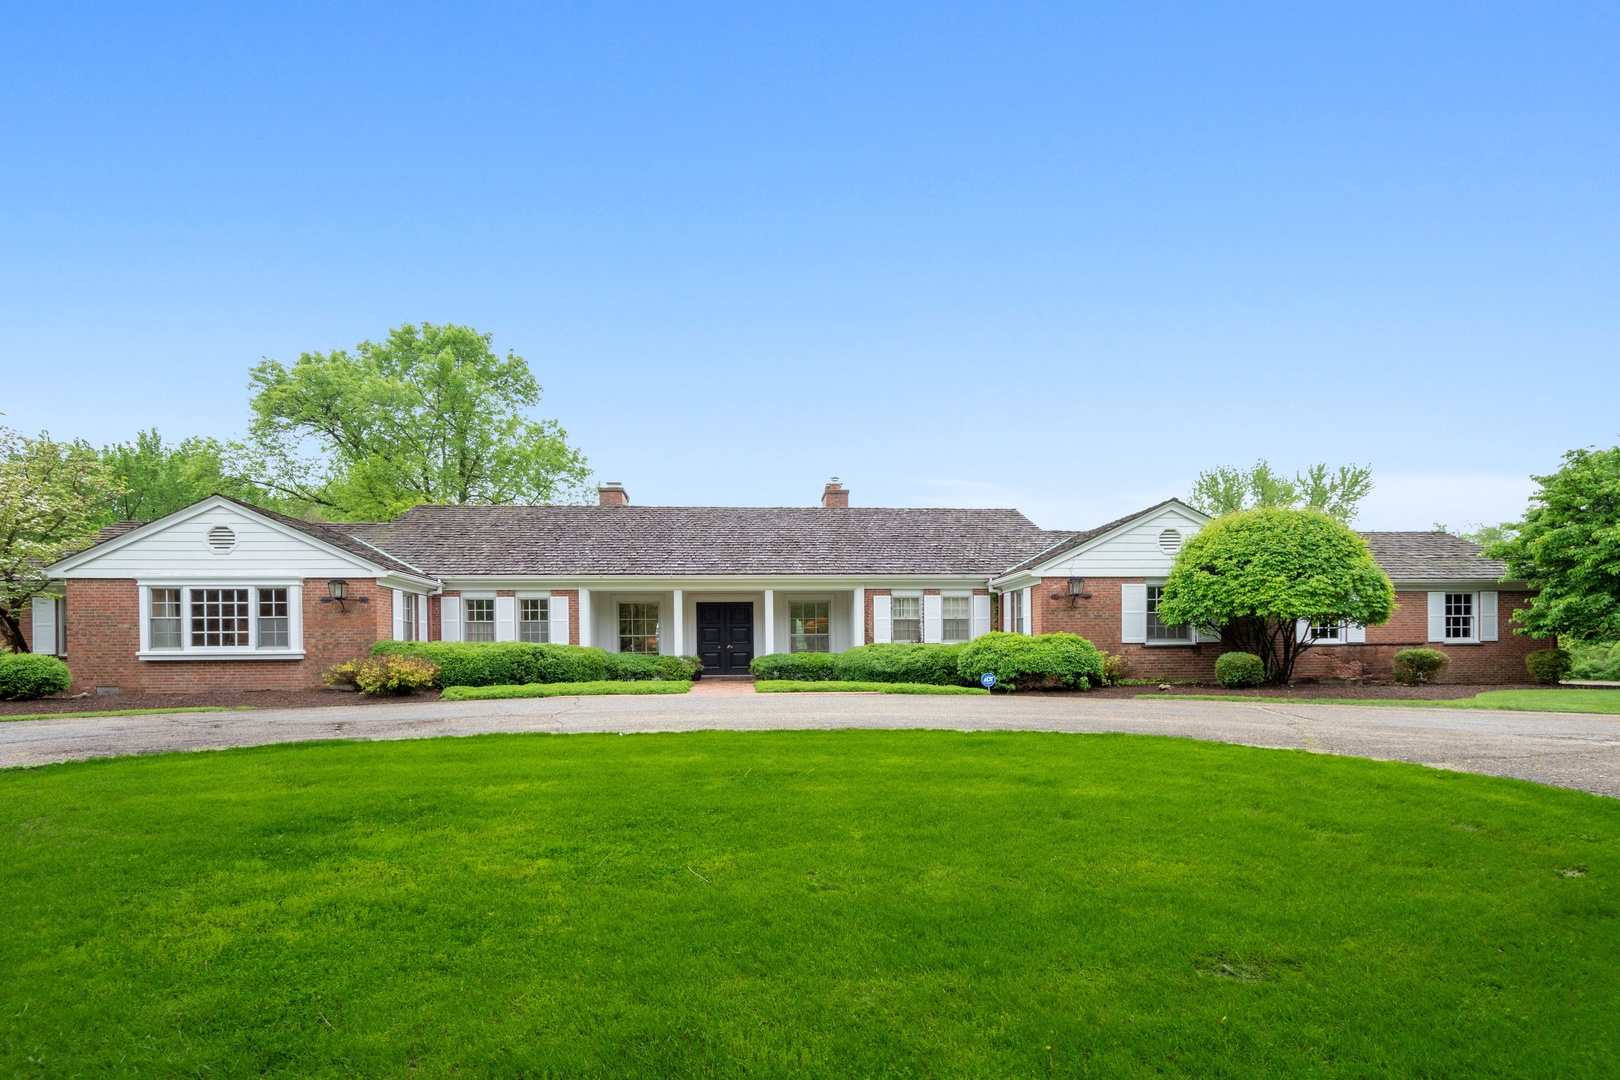 362 South Bateman Circle, Barrington Hills, Illinois 60010